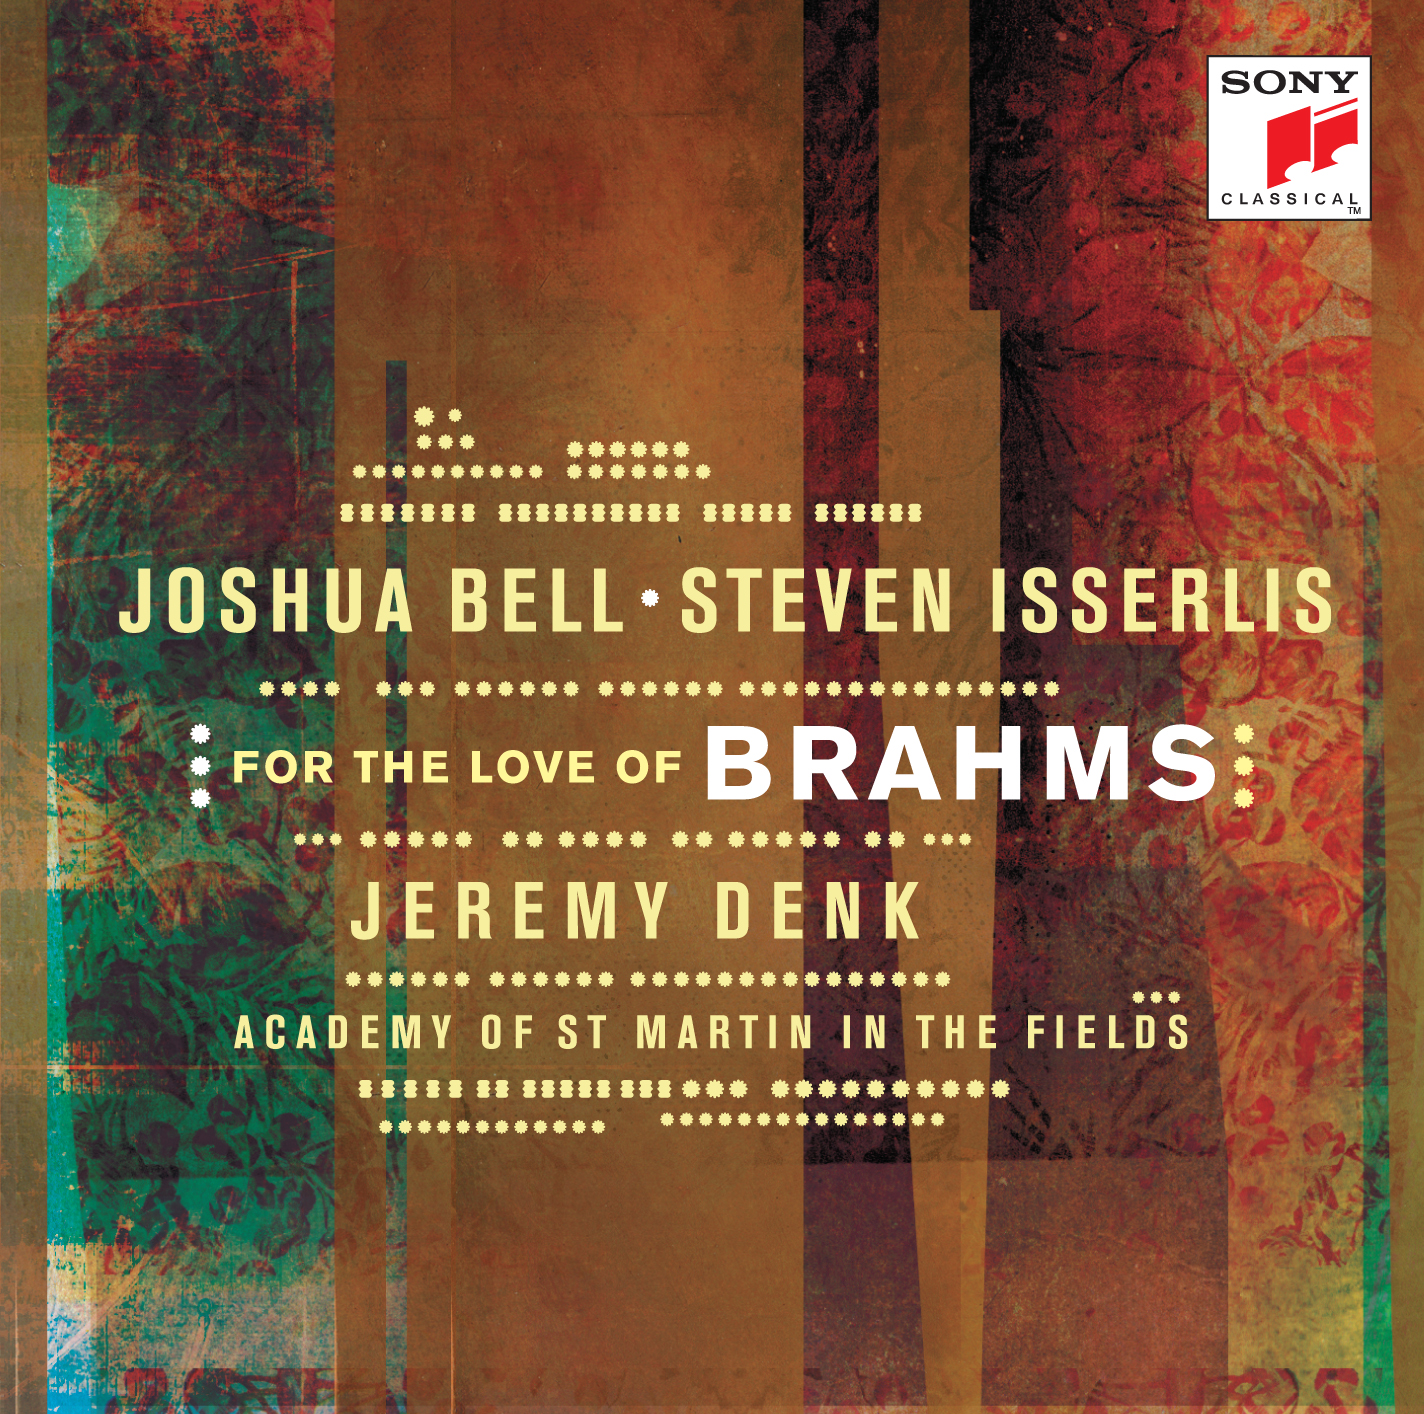 MUSIC ABOUT LOVE AND FRIENDSHIP INSPIRES JOSHUA BELL AND STEVEN ISSERLIS ON NEW ALBUM FOR THE LOVE OF BRAHMS